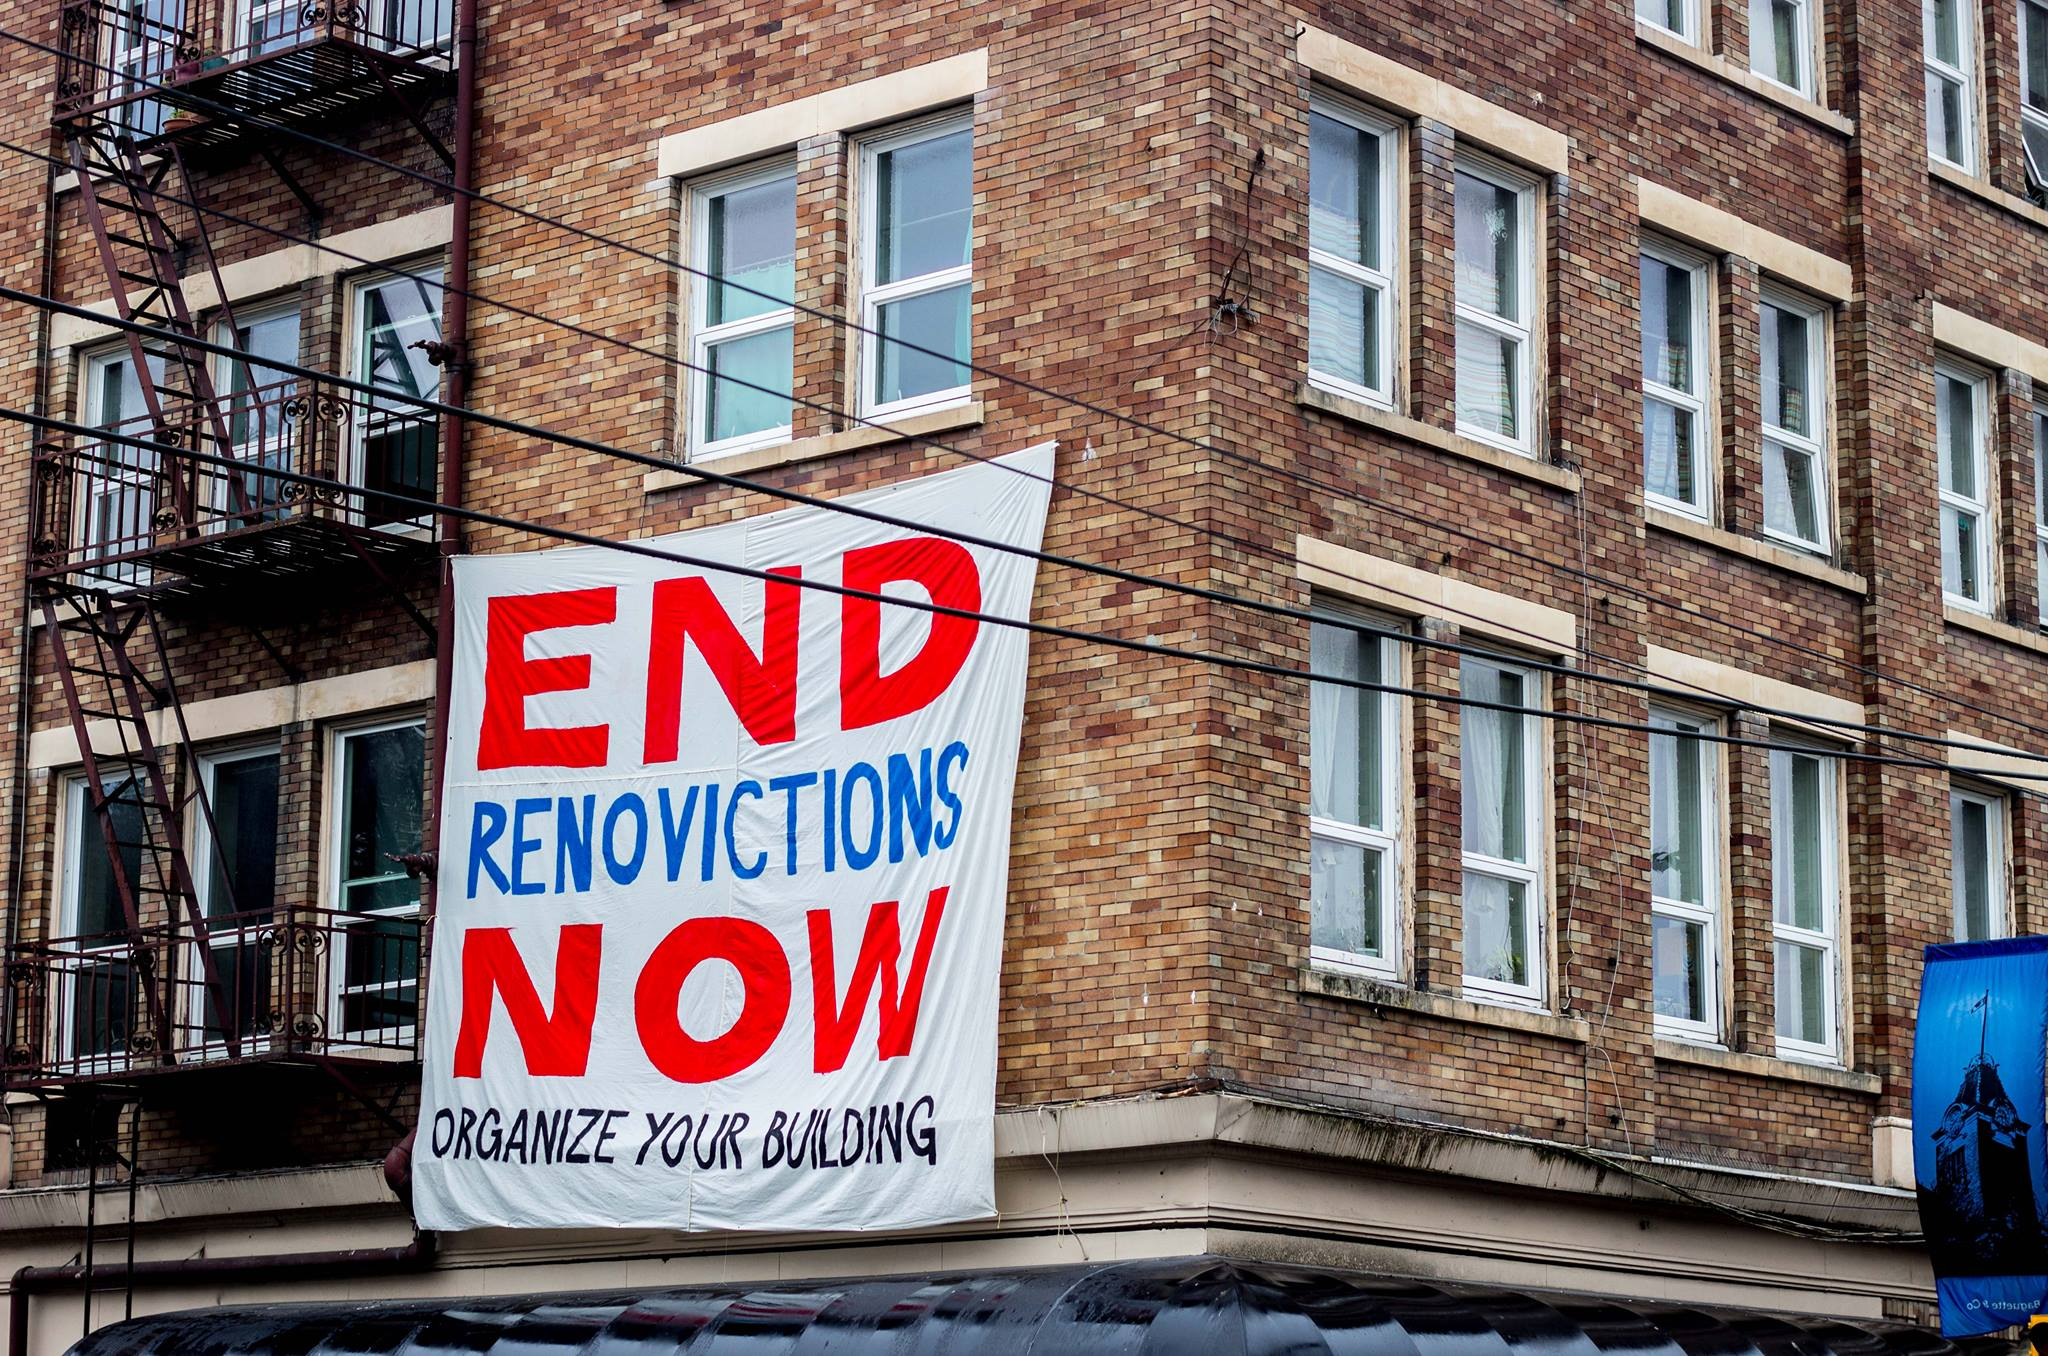 end renovictions now